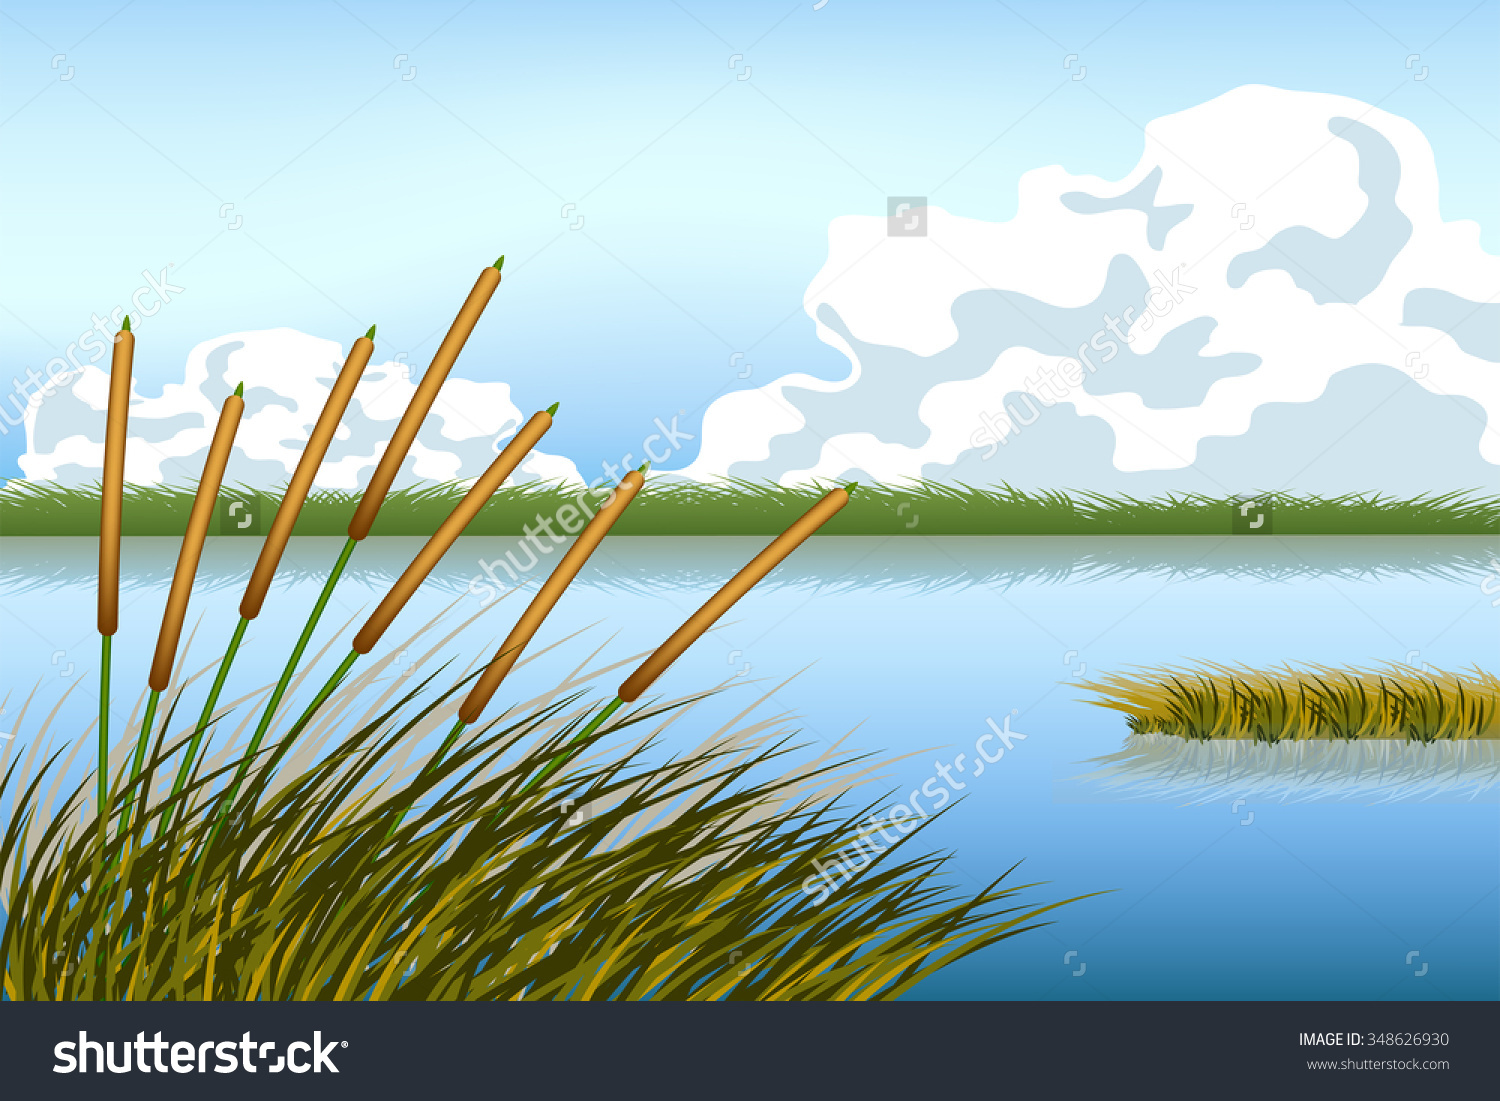 Lake Scape Reed Grass Vector Stock Vector 348626930.